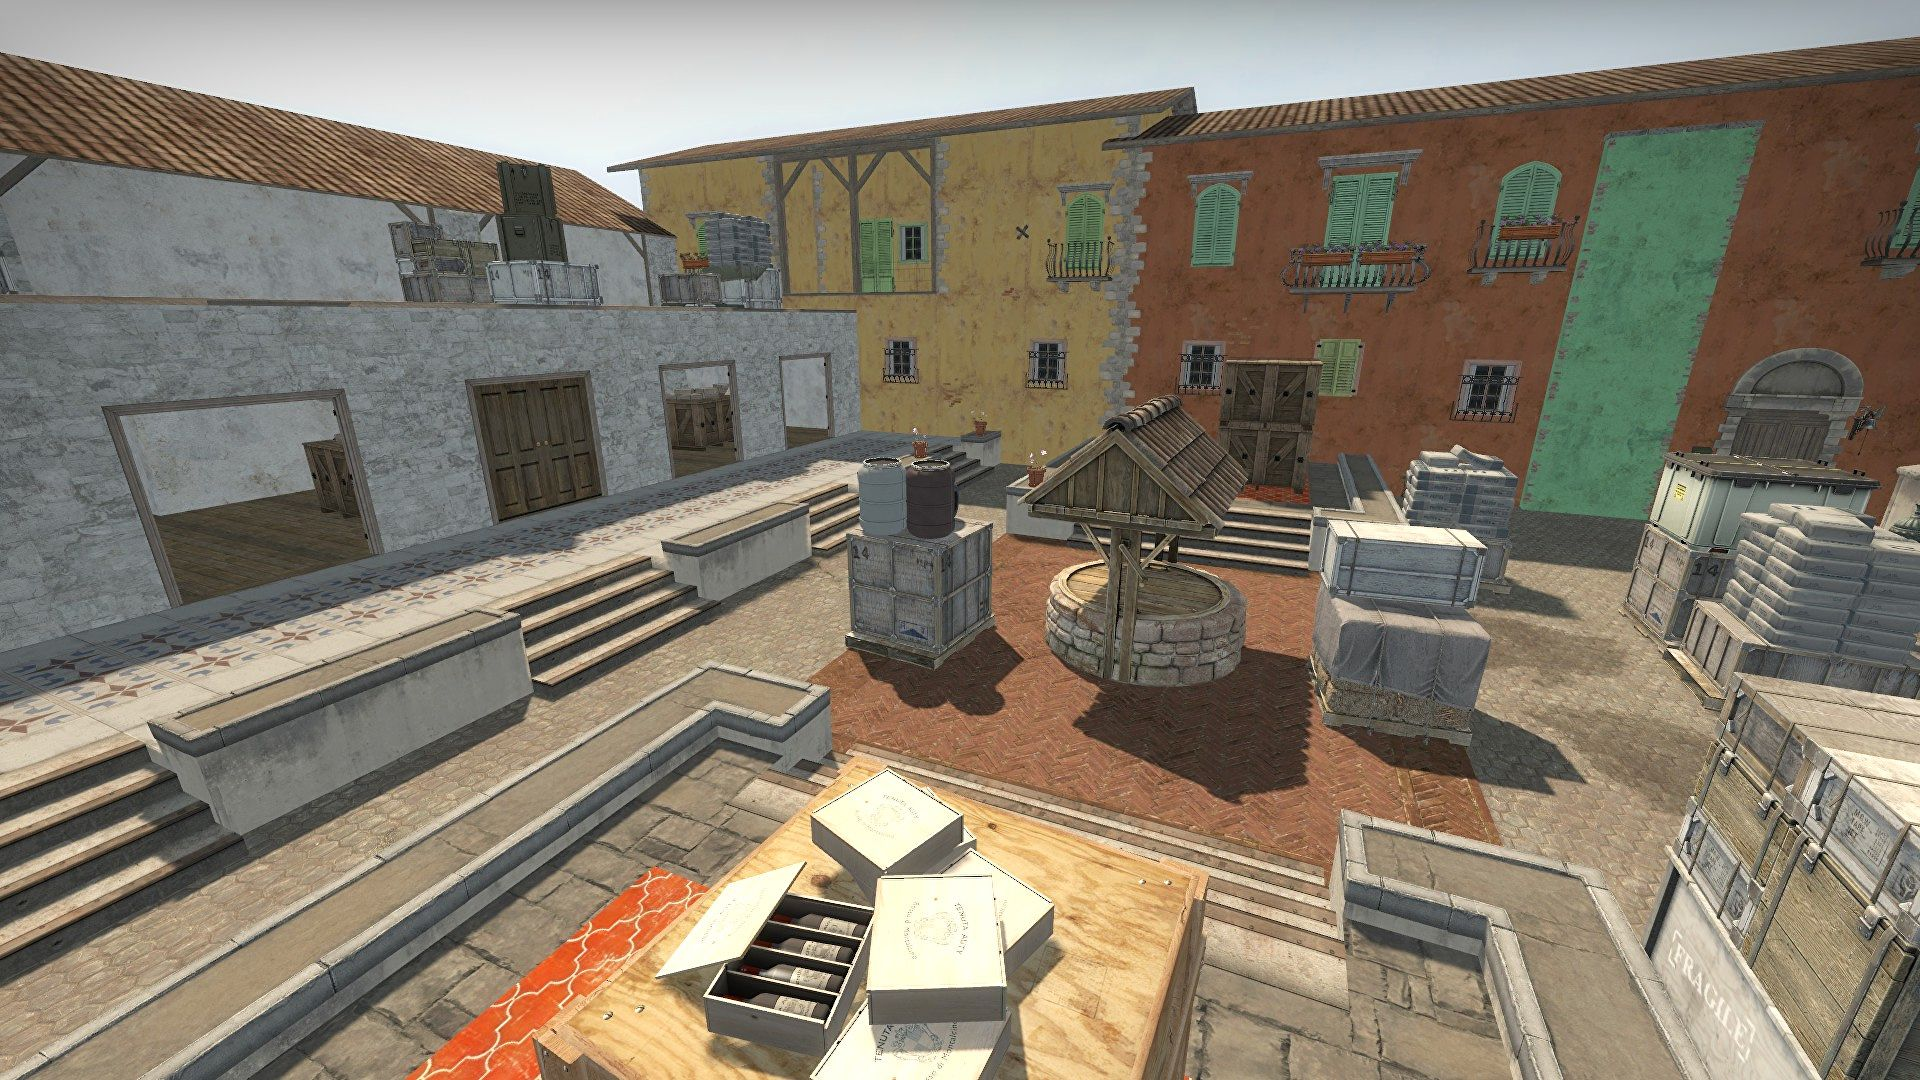 Counter-Strike: Global Offensive custom level has 30 million possible permutations